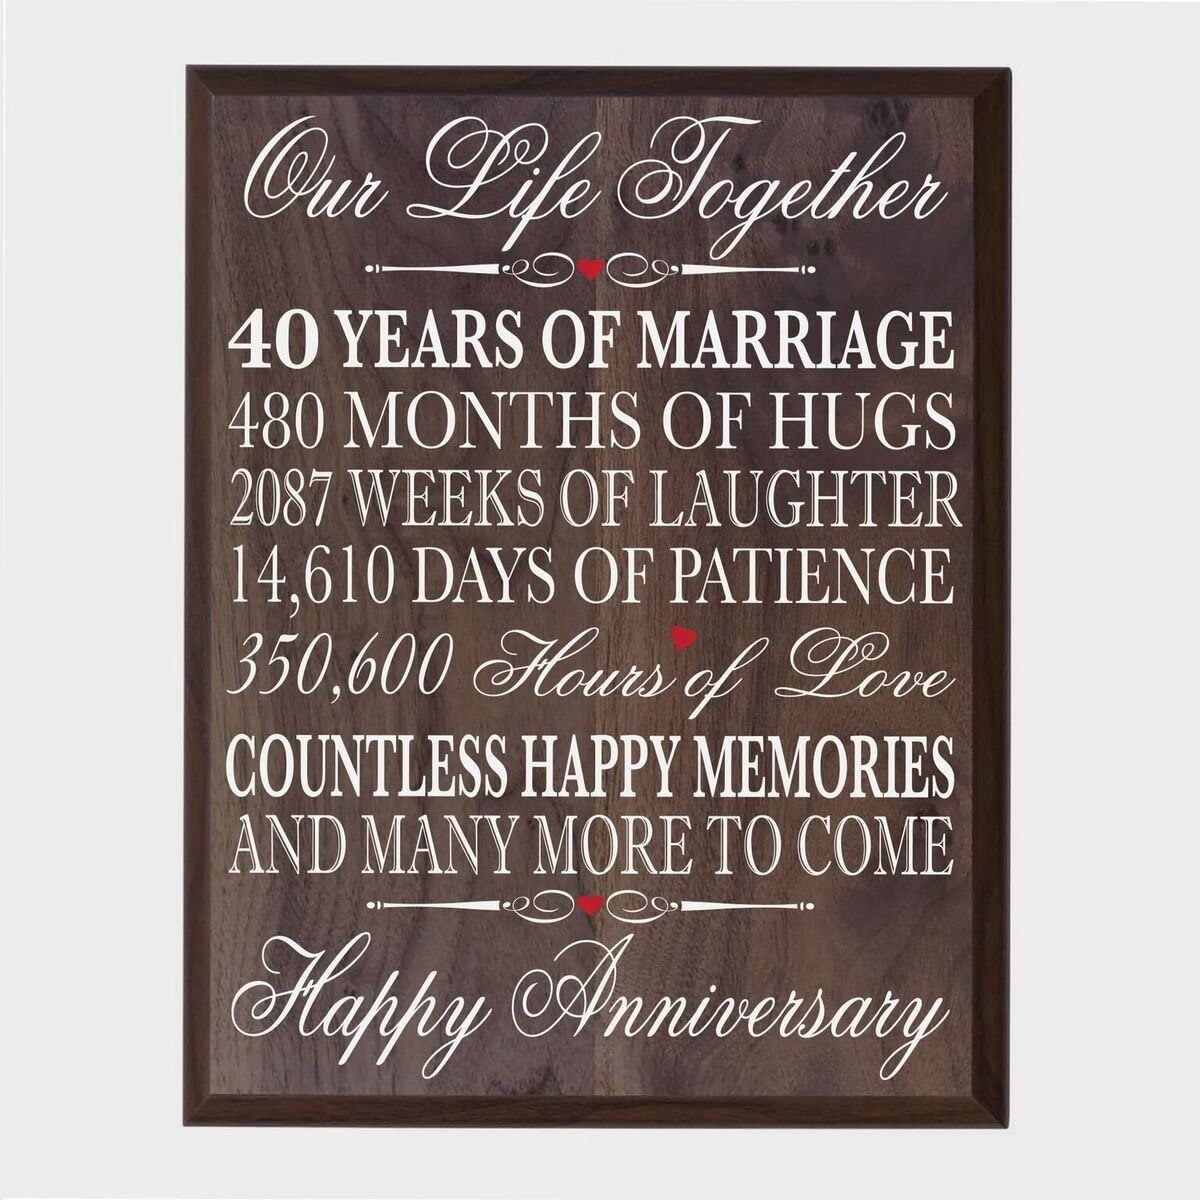 """10th Wedding Anniversary Wall Plaque Gifts for Couple, 10th Anniversary  Gifts for Her,10th Wedding Anniversary Gifts for Him 10"""" WX 10"""" H Wall  Plaque"""